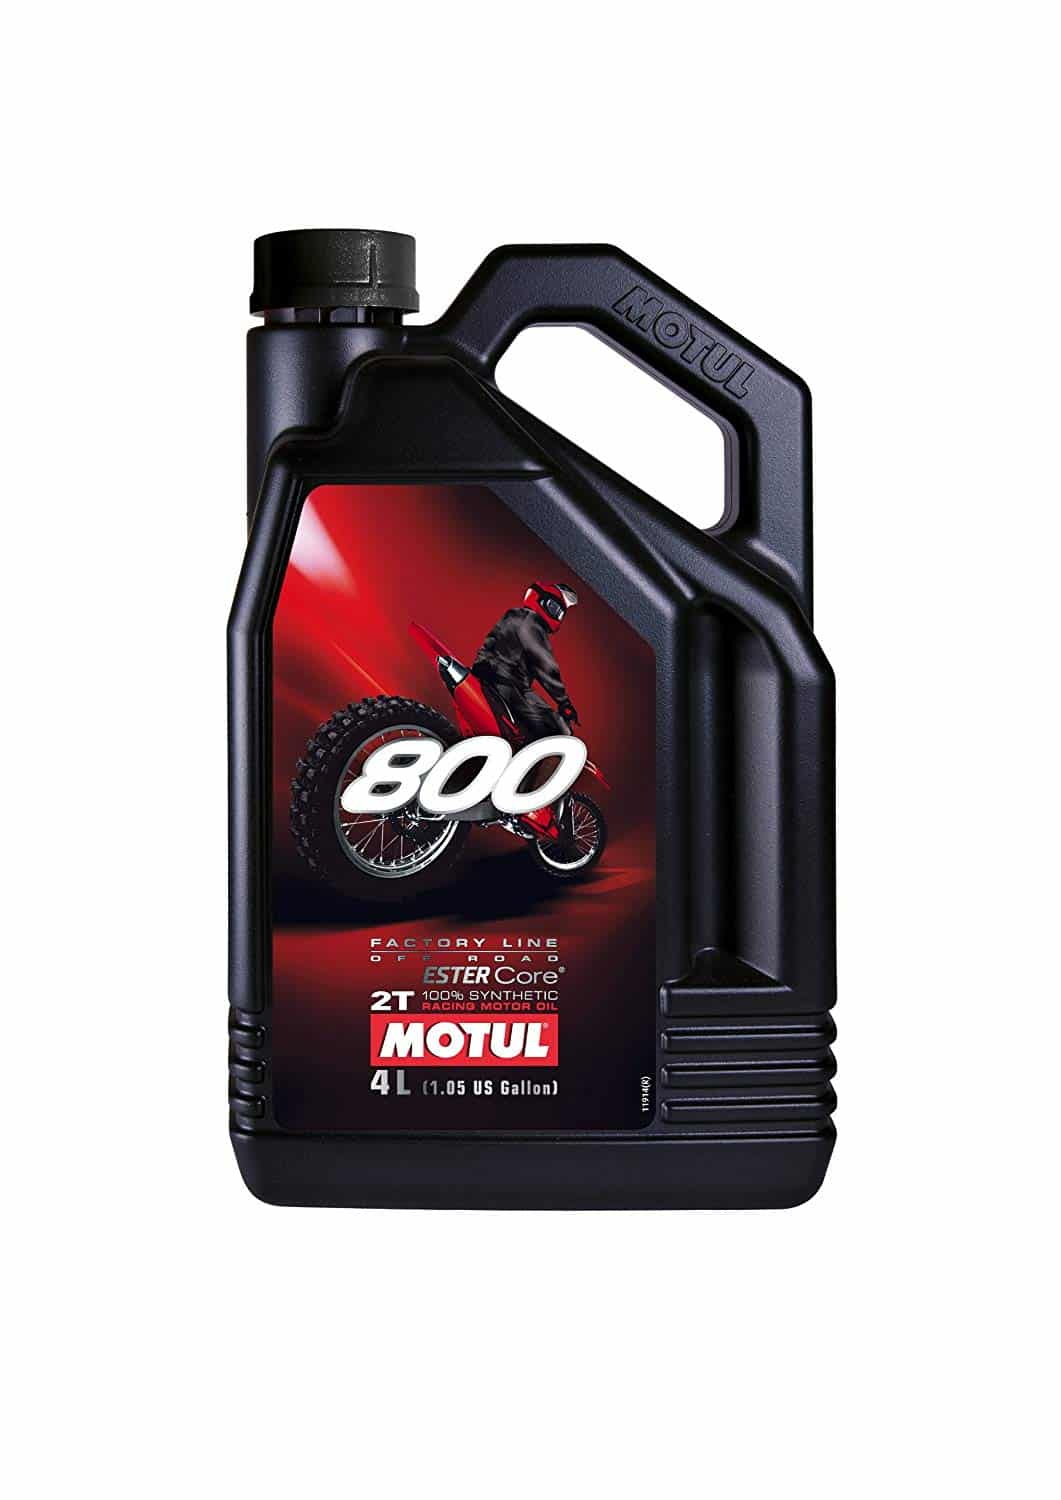 Premix Ratios For 2 Stroke Dirt Bike Oil [Including Charts]